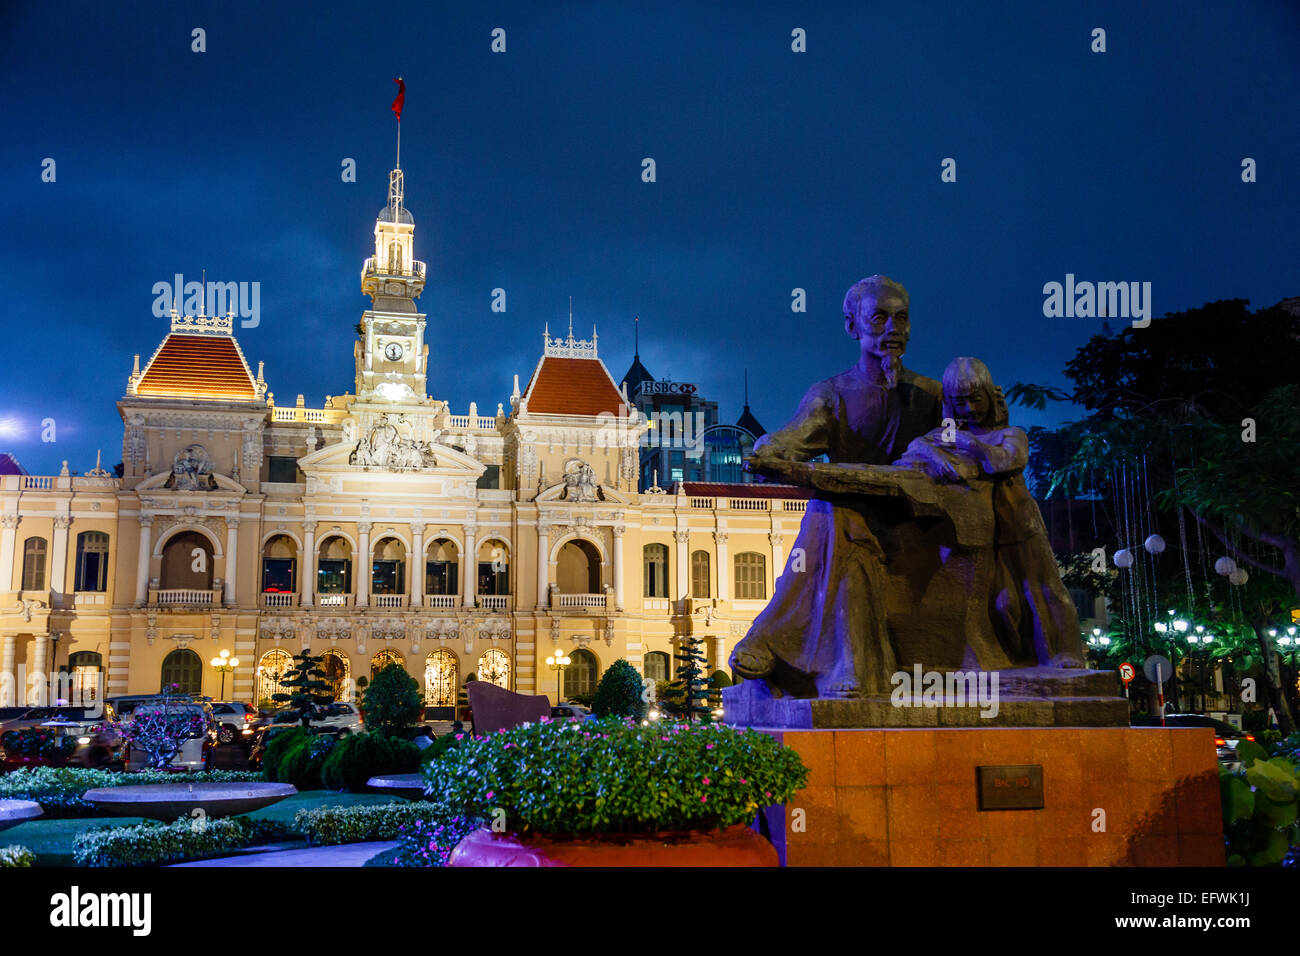 Saigon City Hall building, Ho Chi Minh City (Saigon), Vietnam. - Stock Image